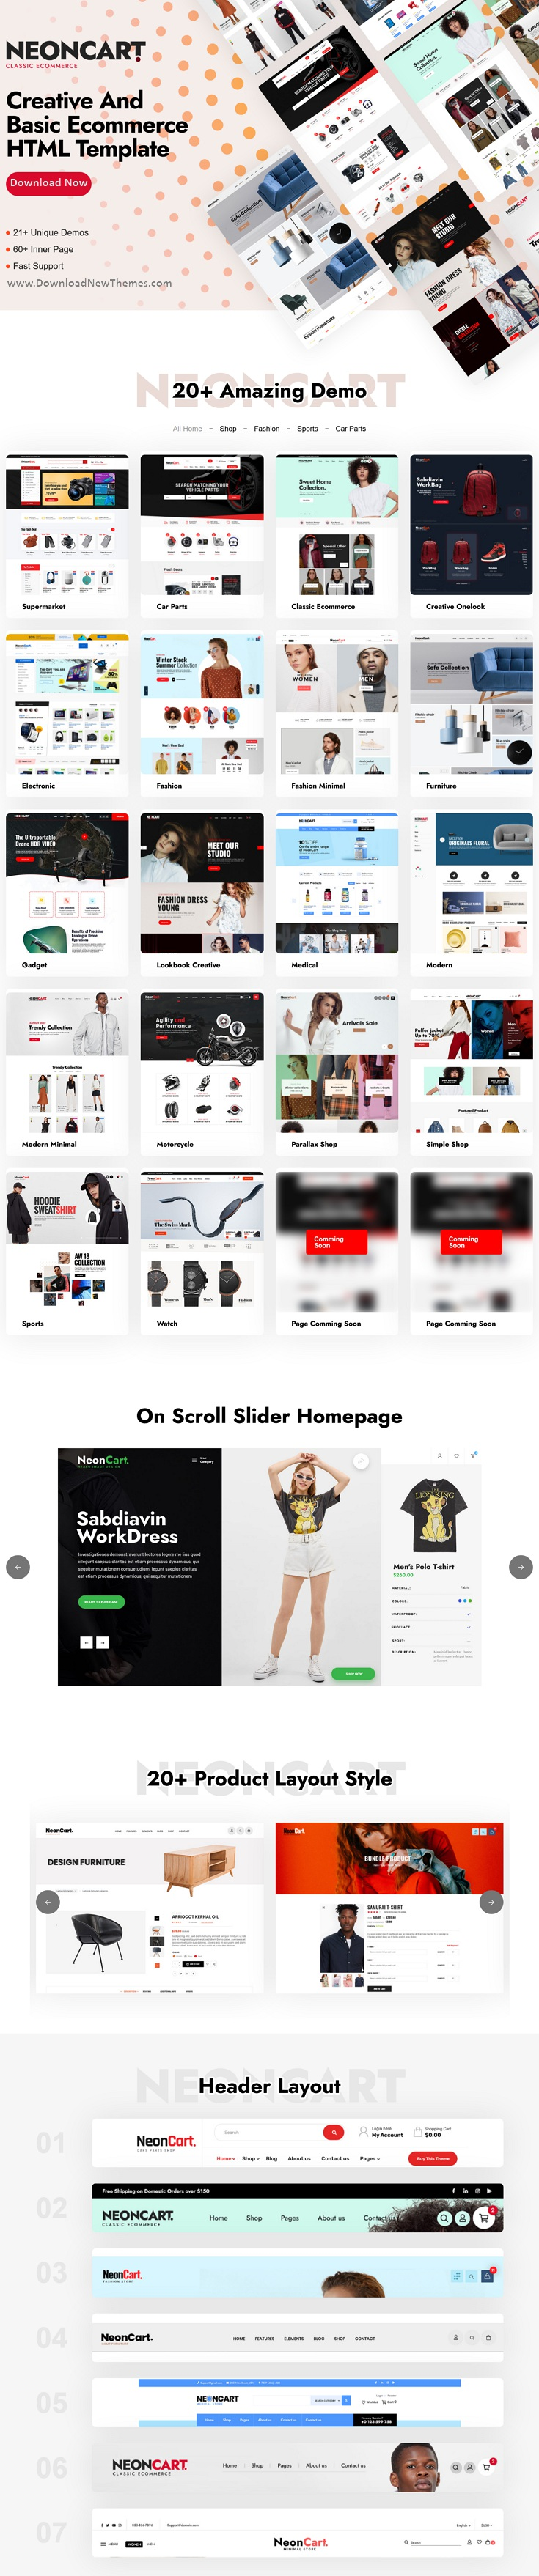 Best Multipurpose Ecommerce Bootstrap Template